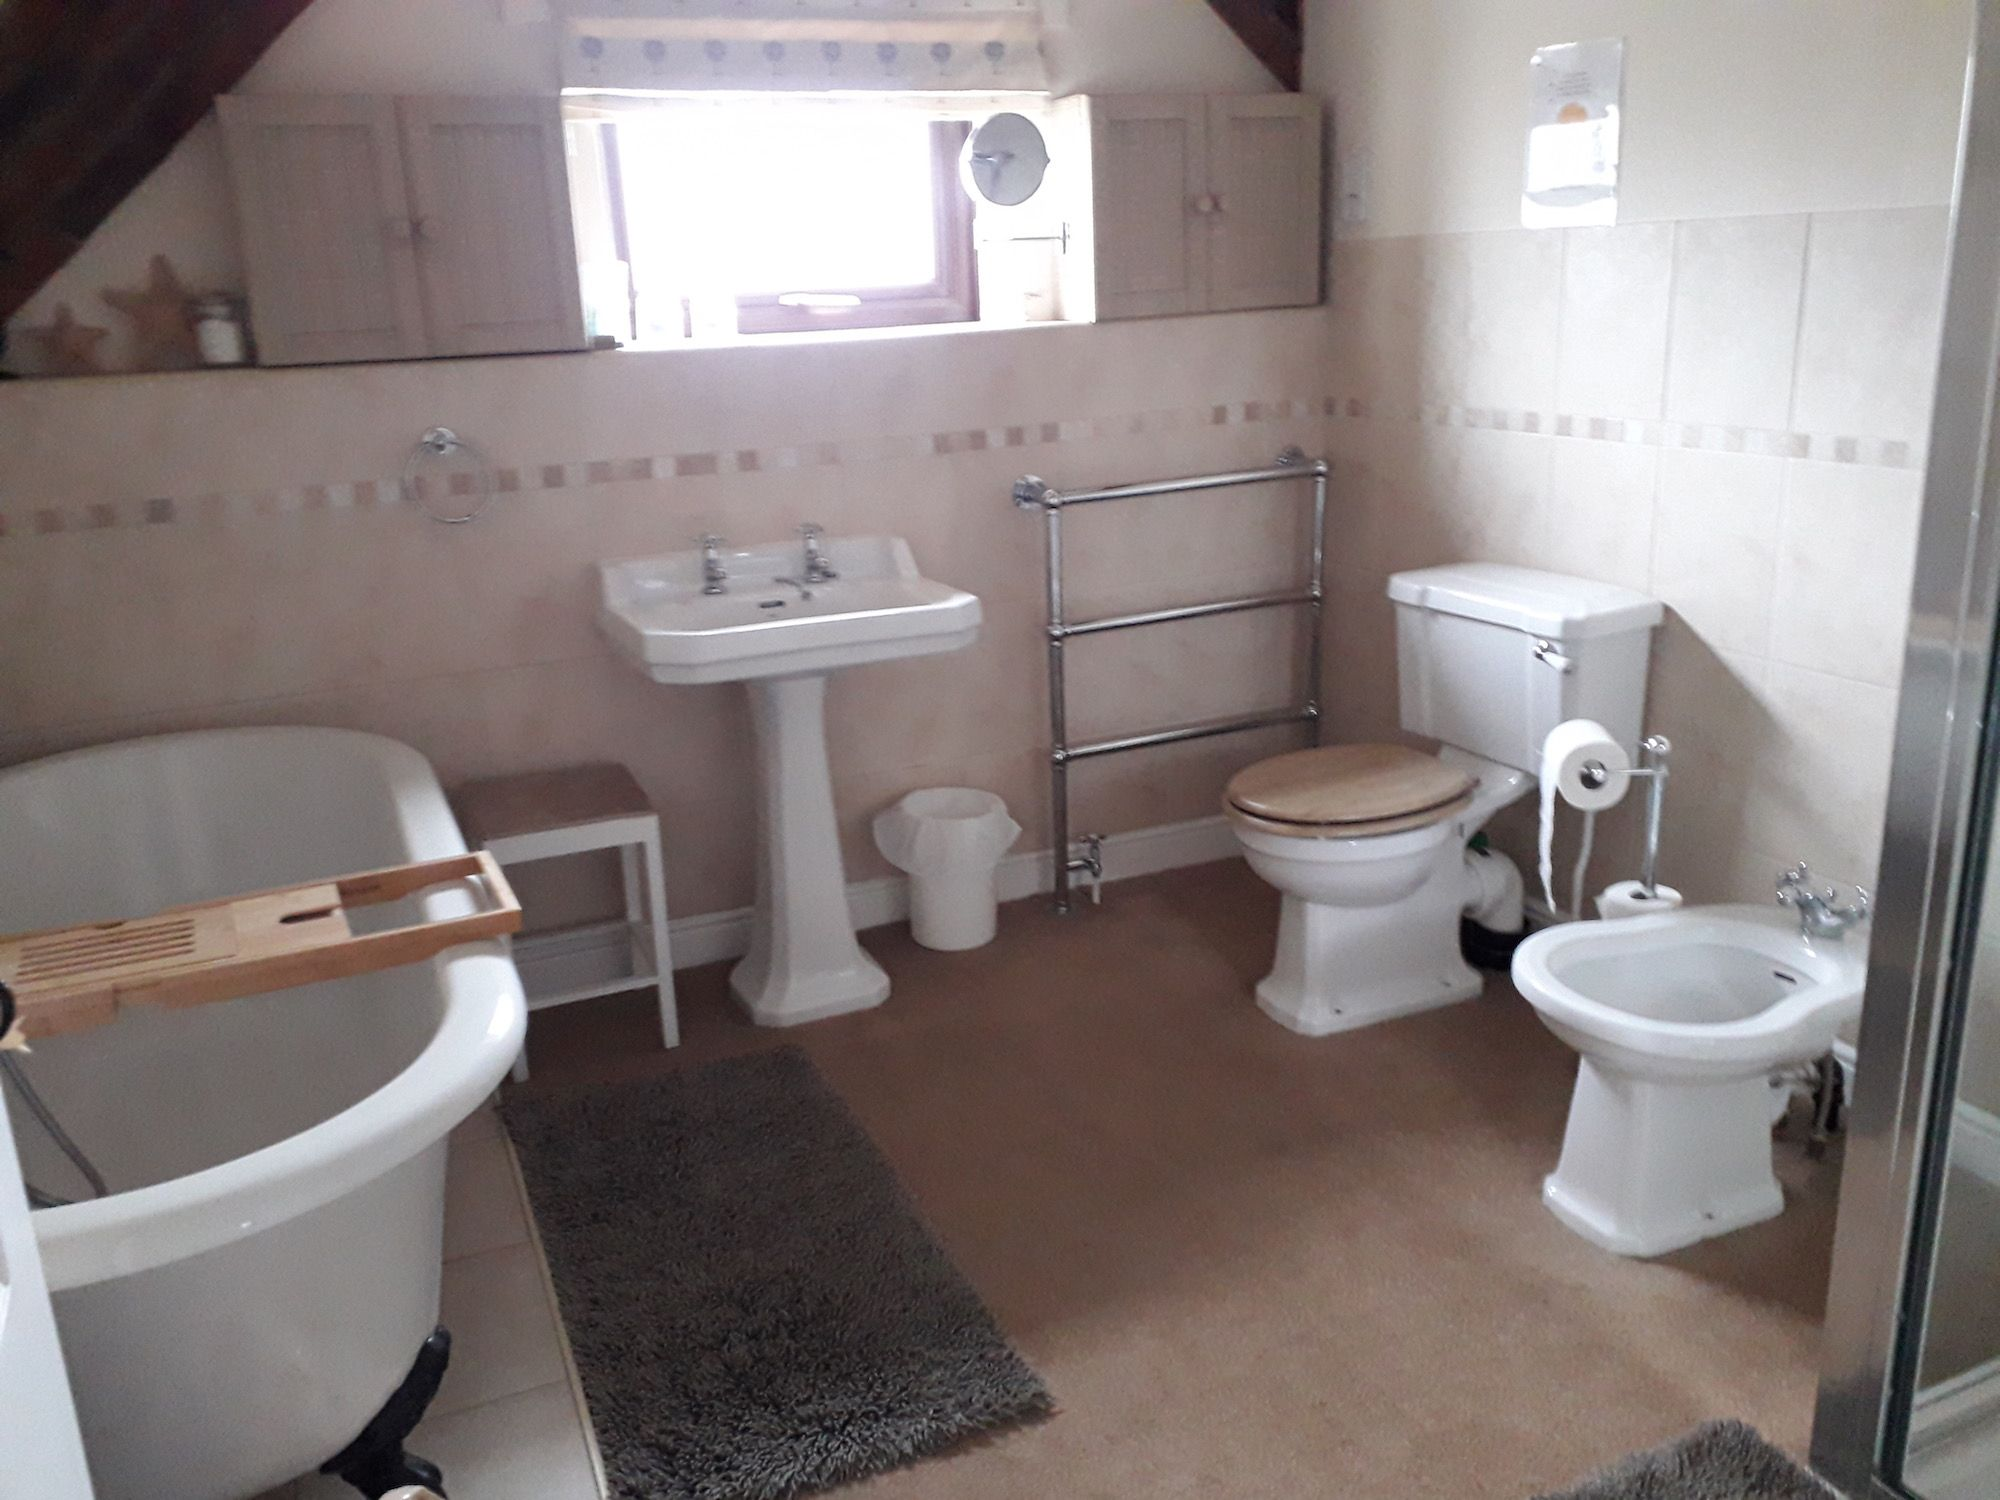 The Bathroom in the Sidings Room at Old Hathern Station